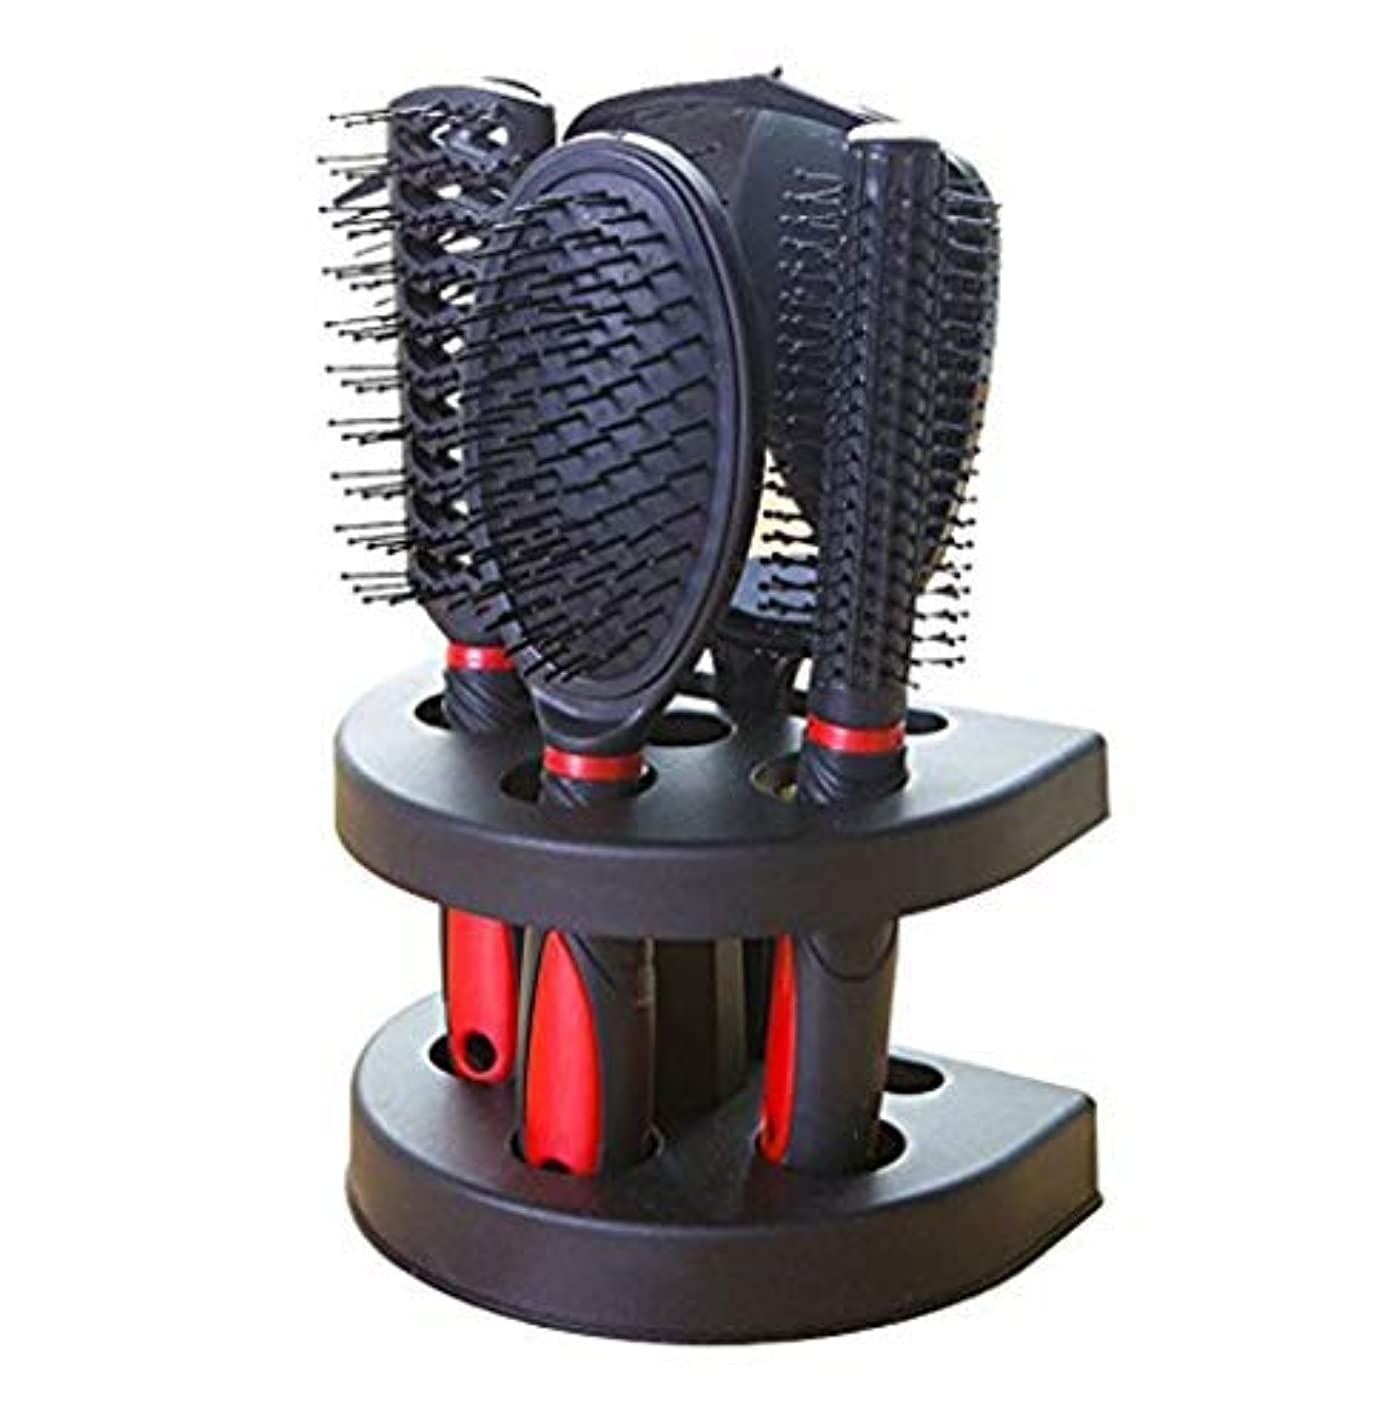 Healthcom Hairs Combs Salon Hairdressing Styling Tool Hair Cutting Brushes Sets Dressing Comb Kits,Set of 5 [並行輸入品]